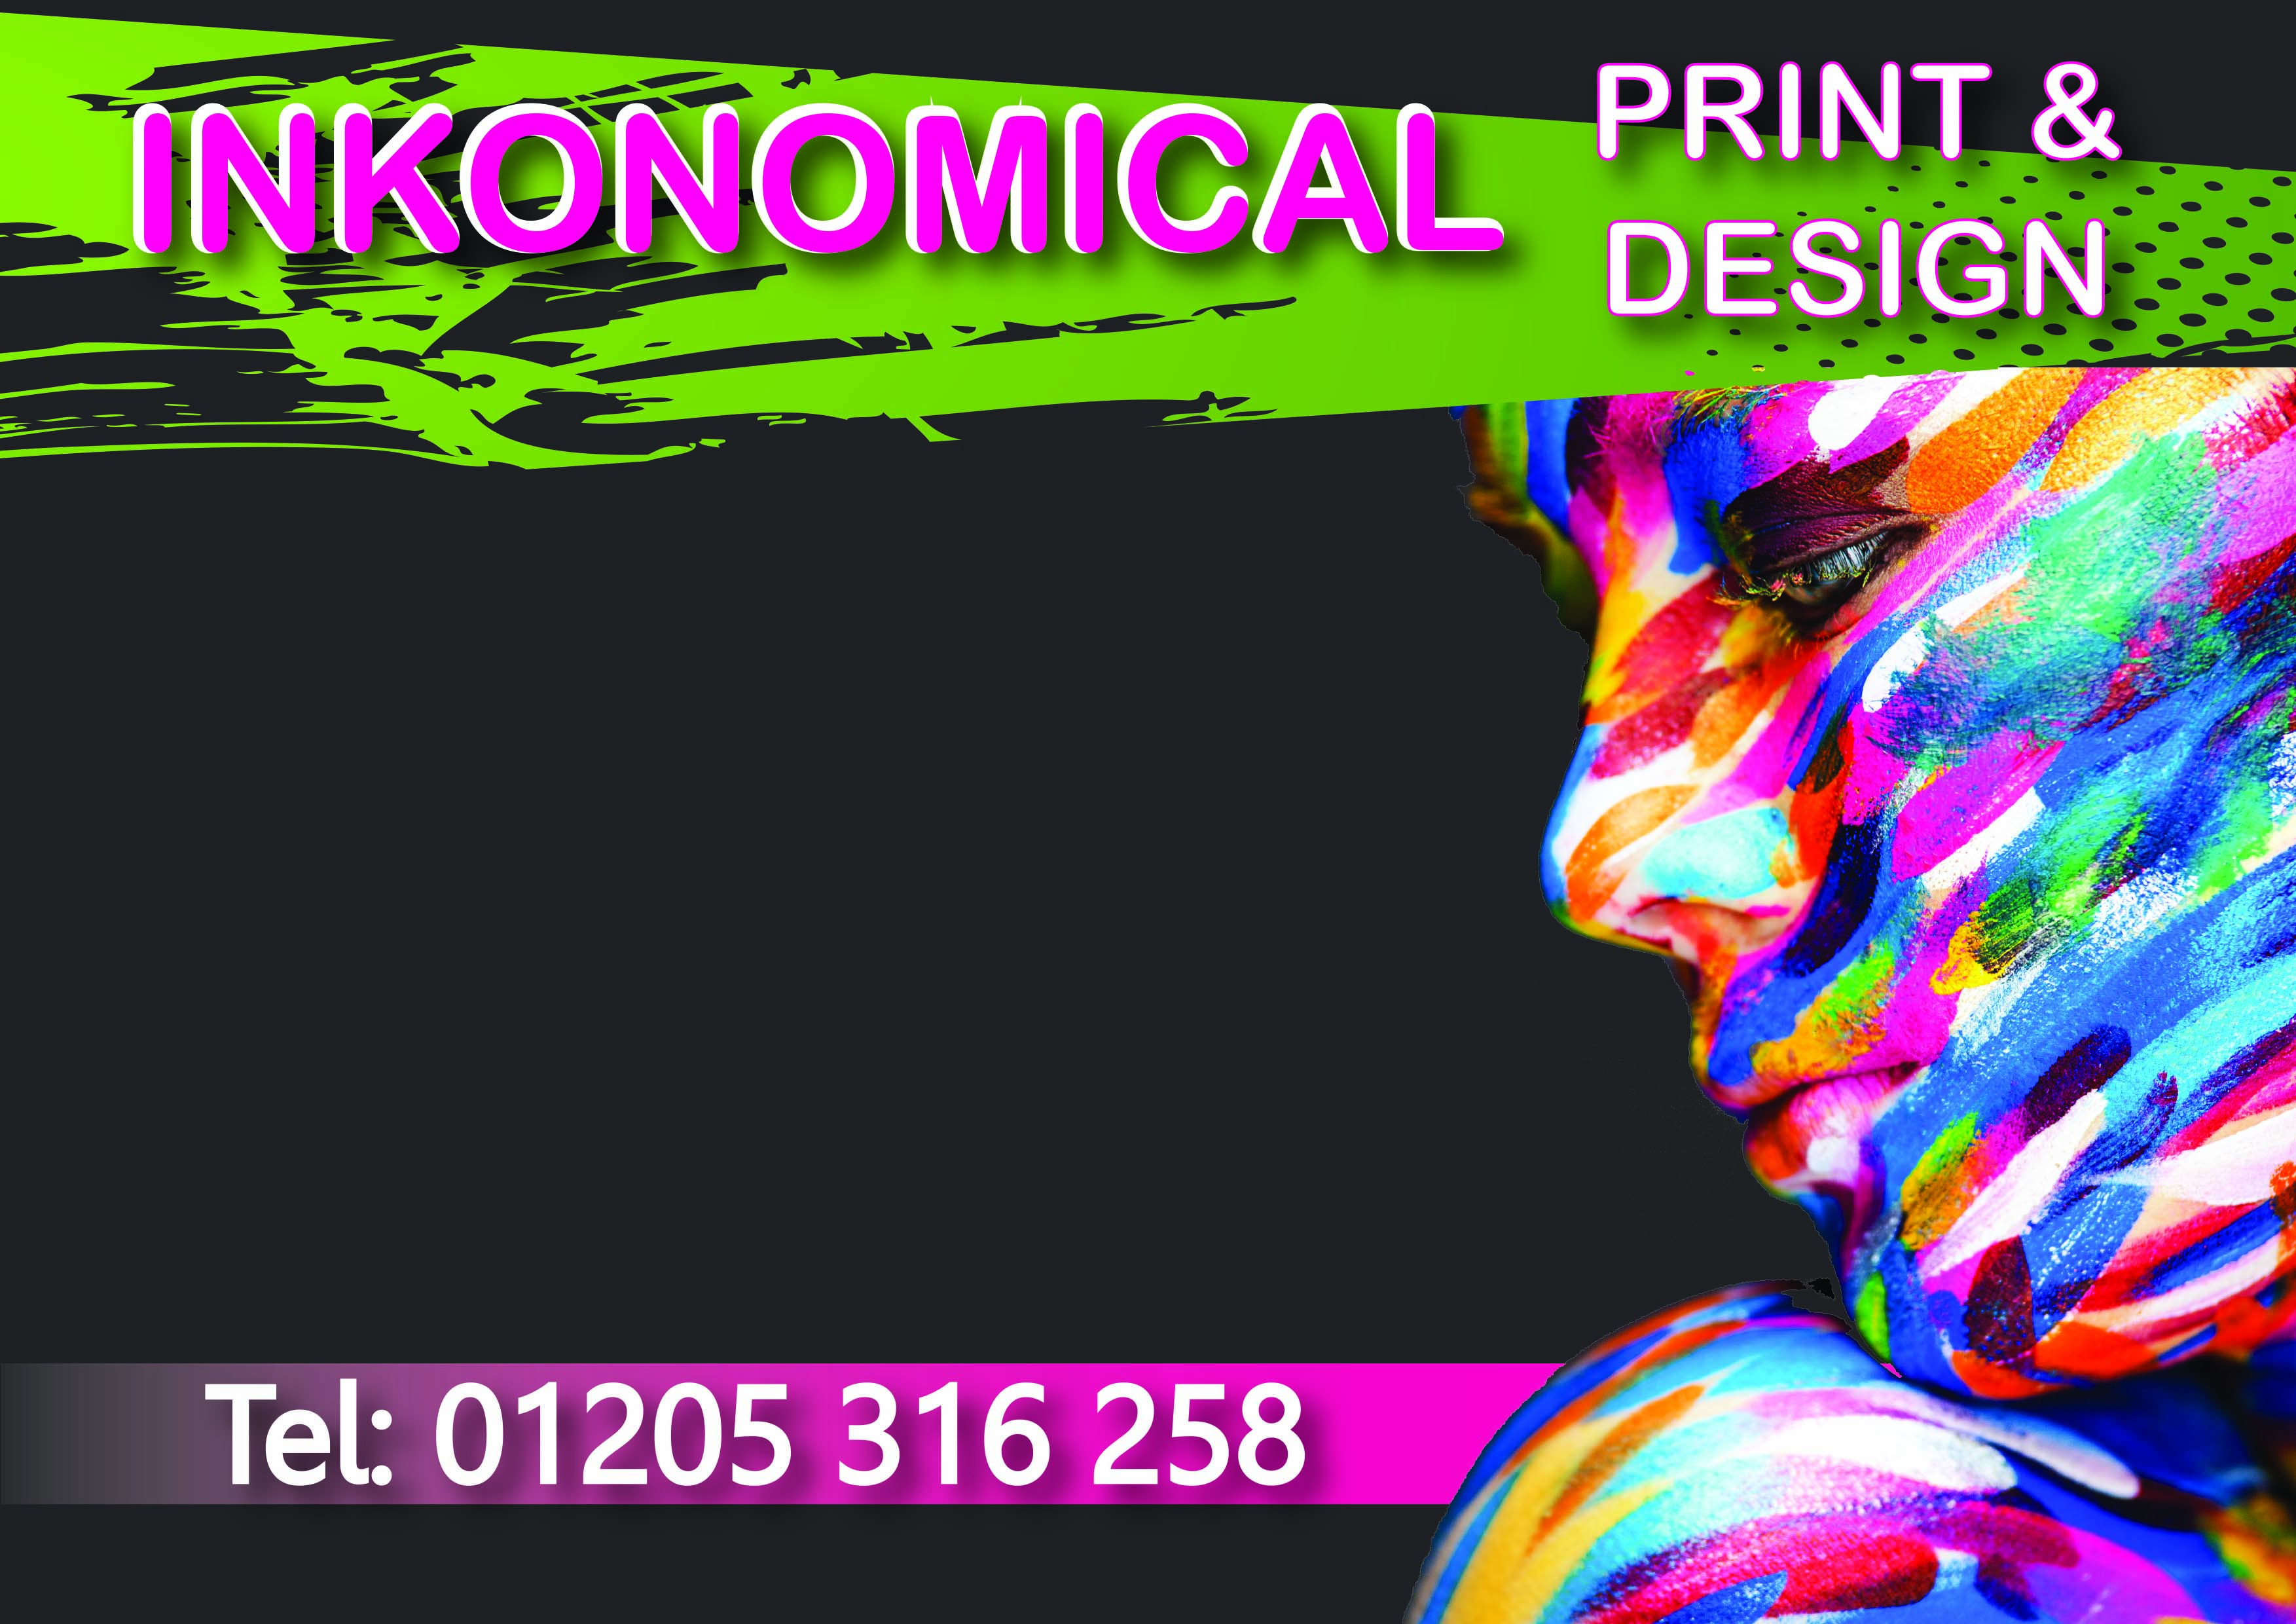 INKONOMICAL PRINT & DESIGN